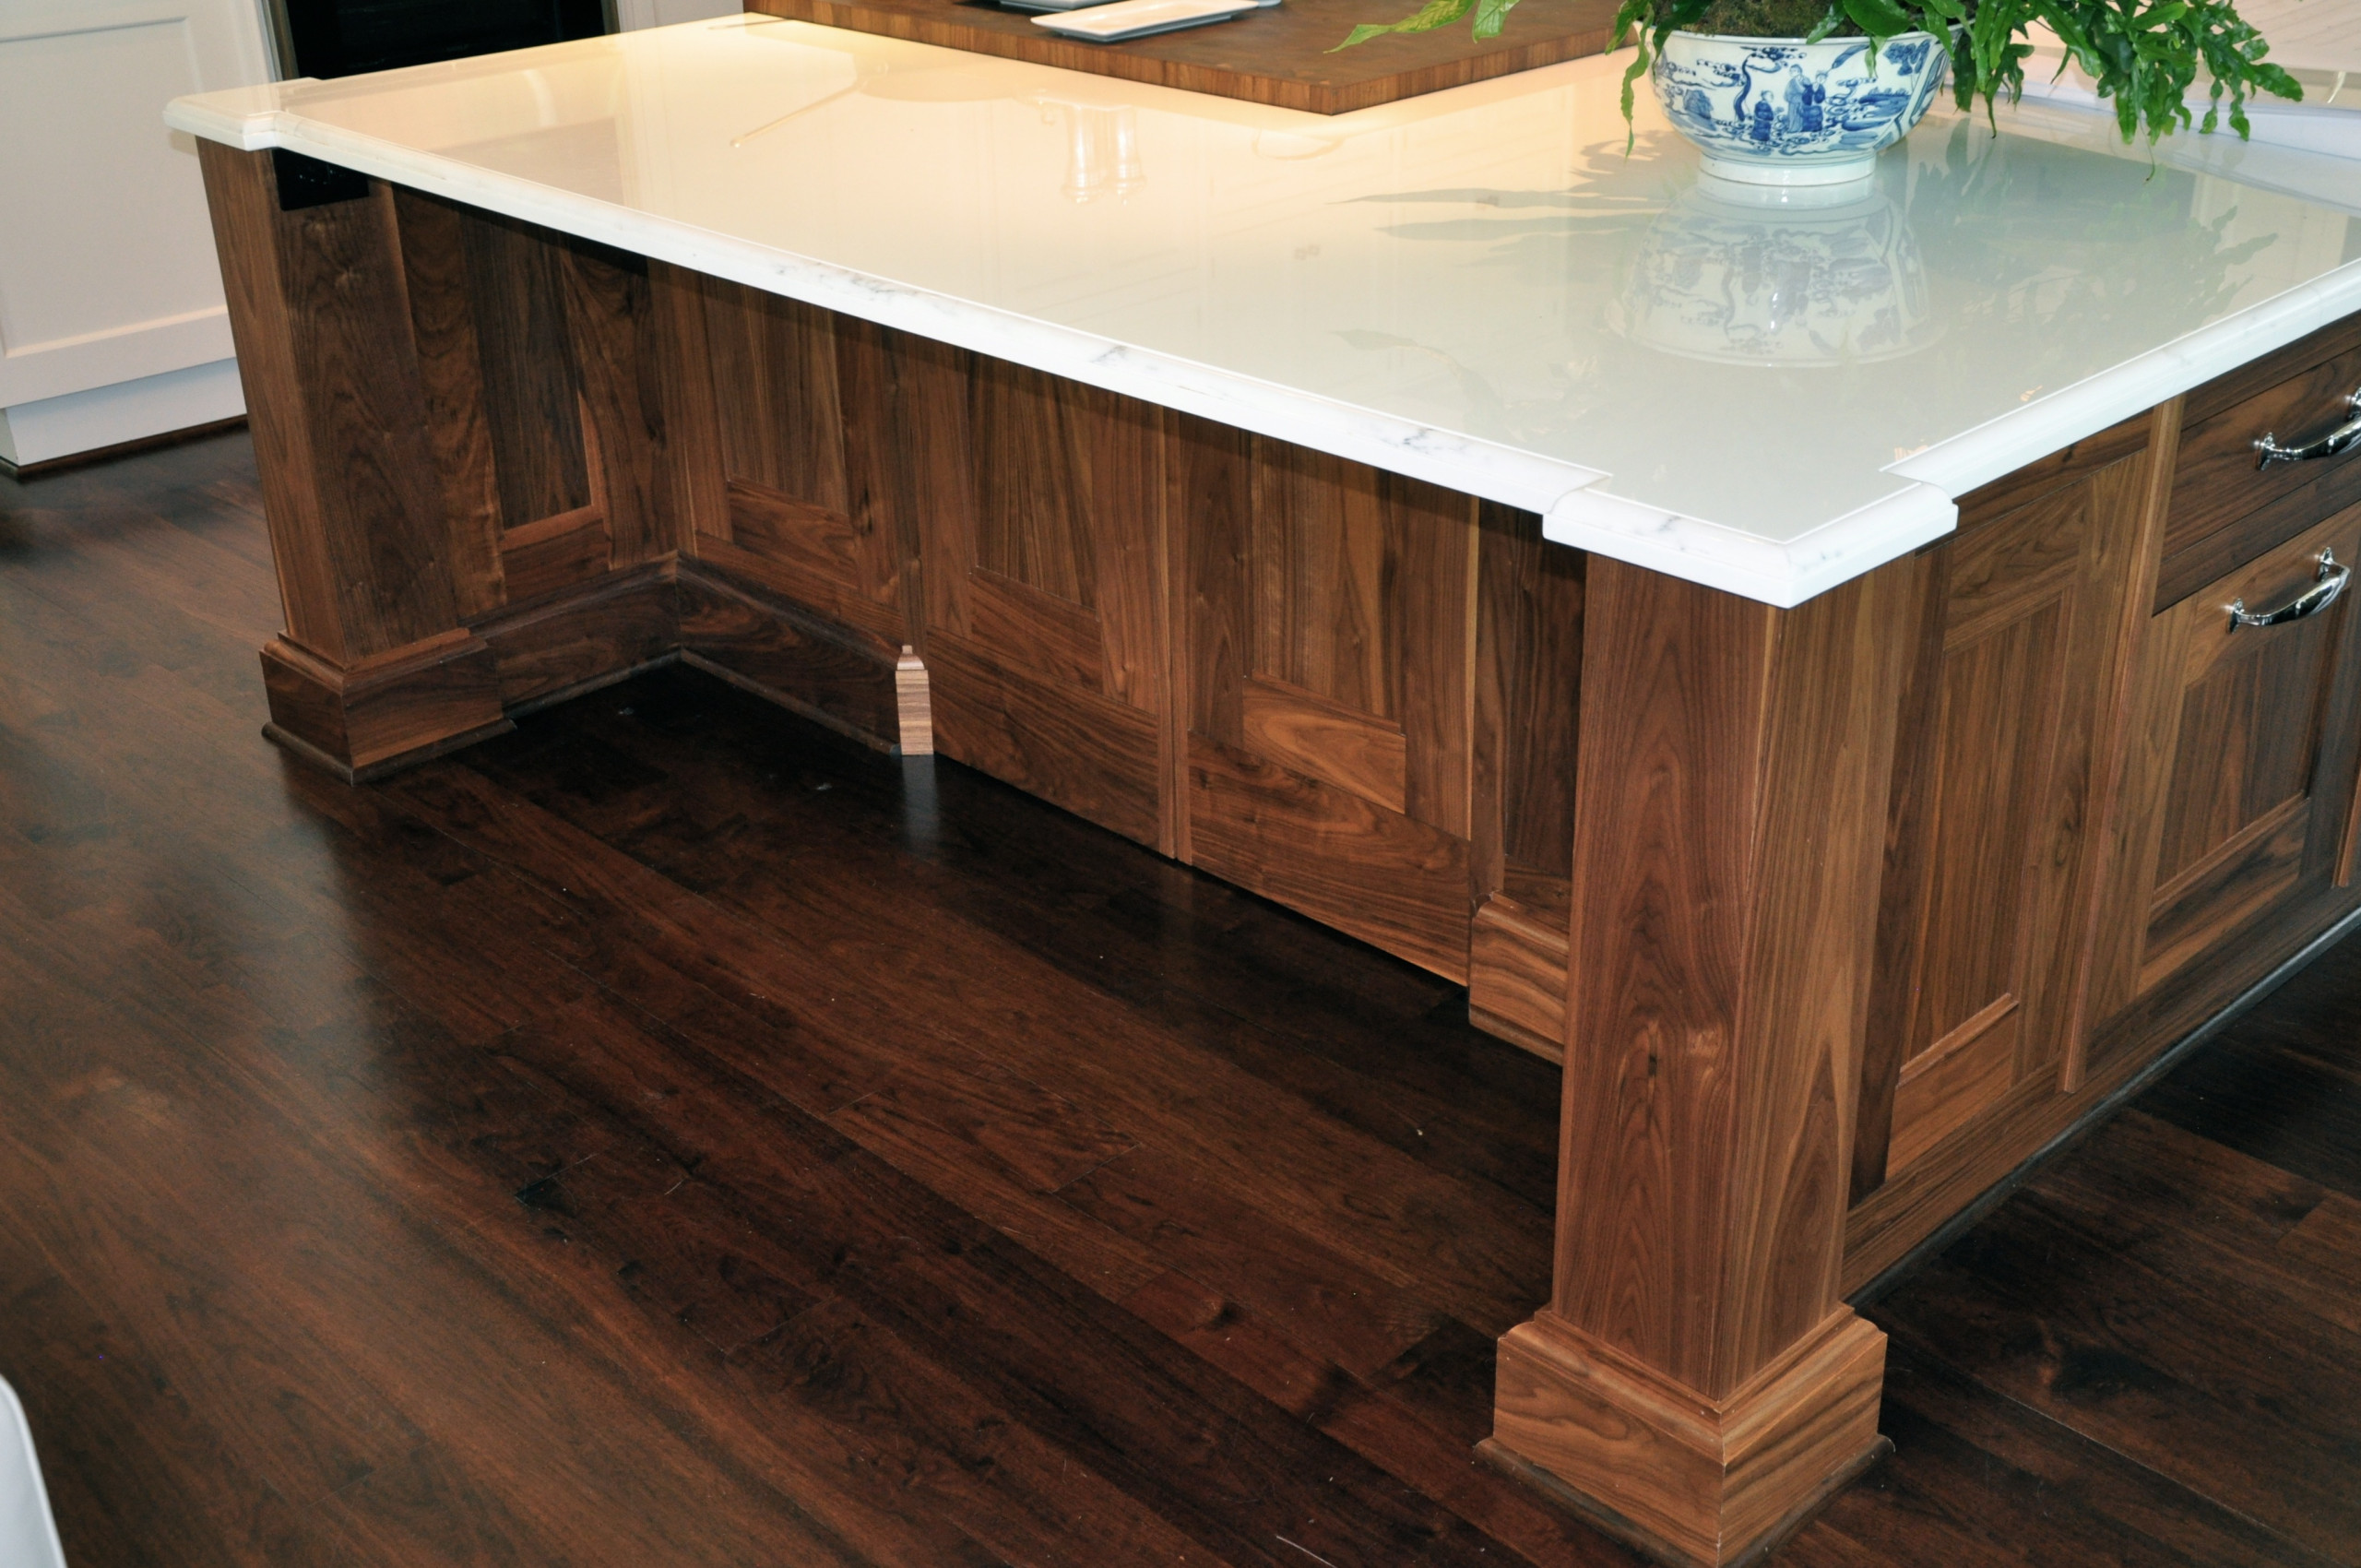 Signature Kitchen with custom made hardware, hand painted with high gloss paint.